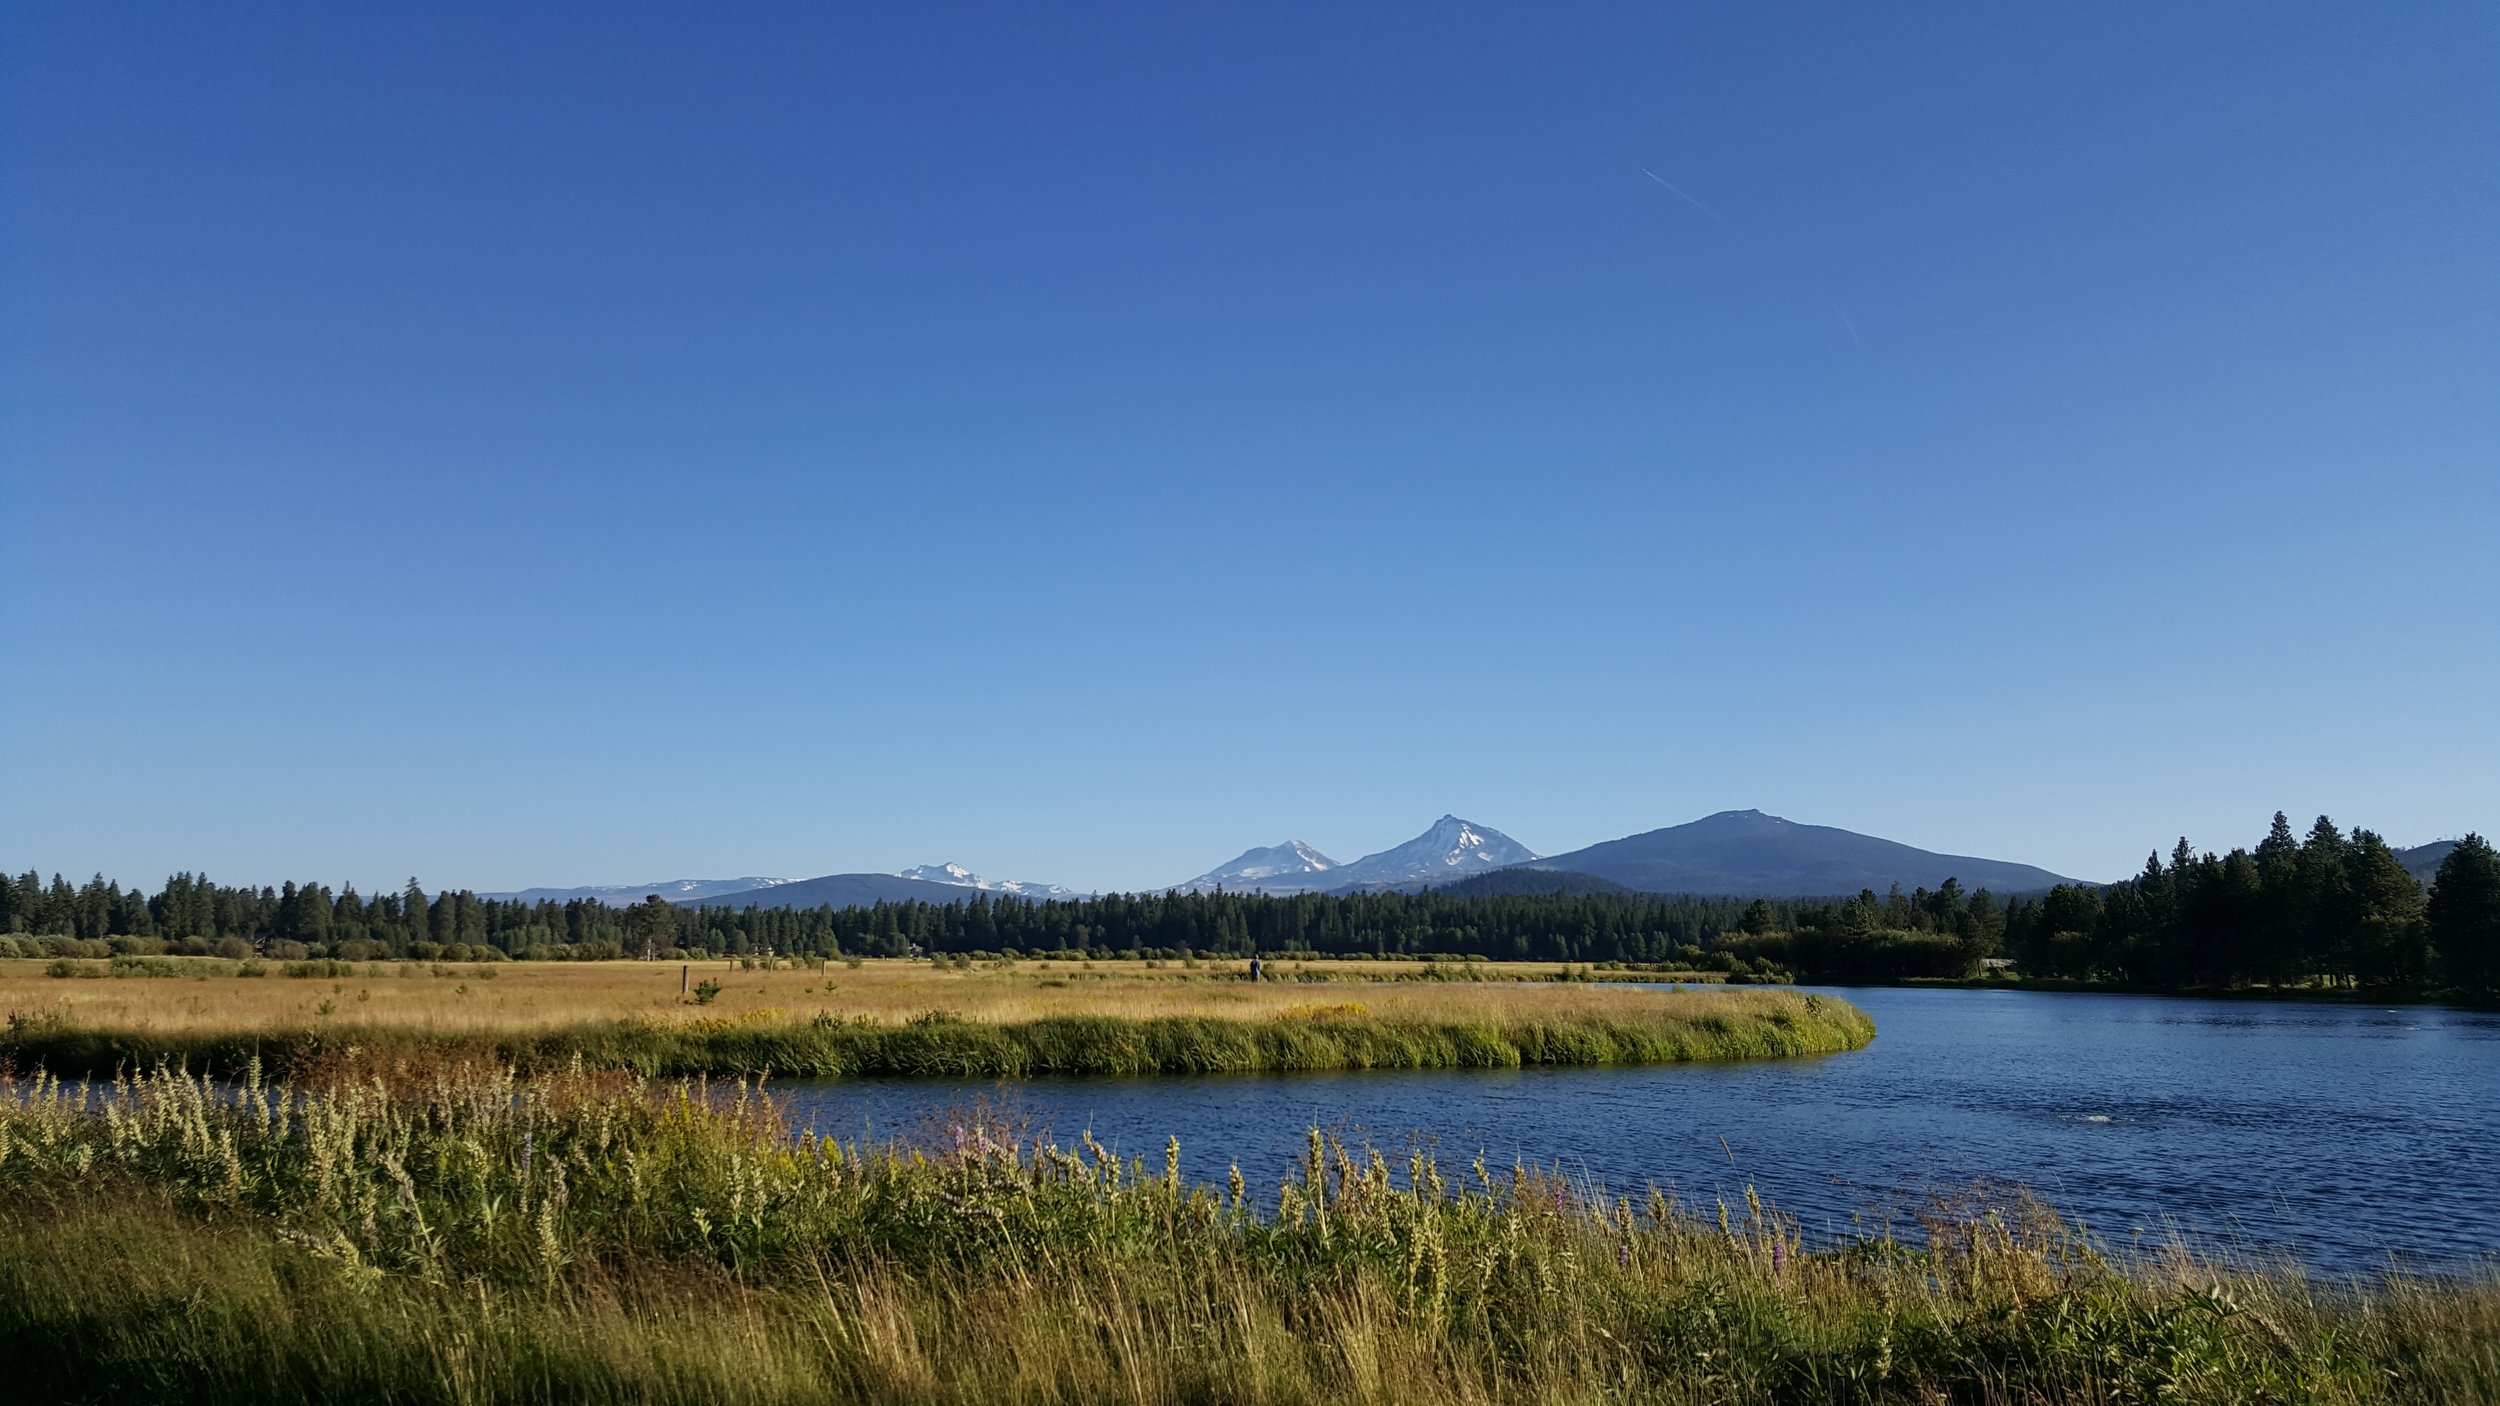 Black Butte Ranch - nature is all around, but there are fun activities for all - families and couples